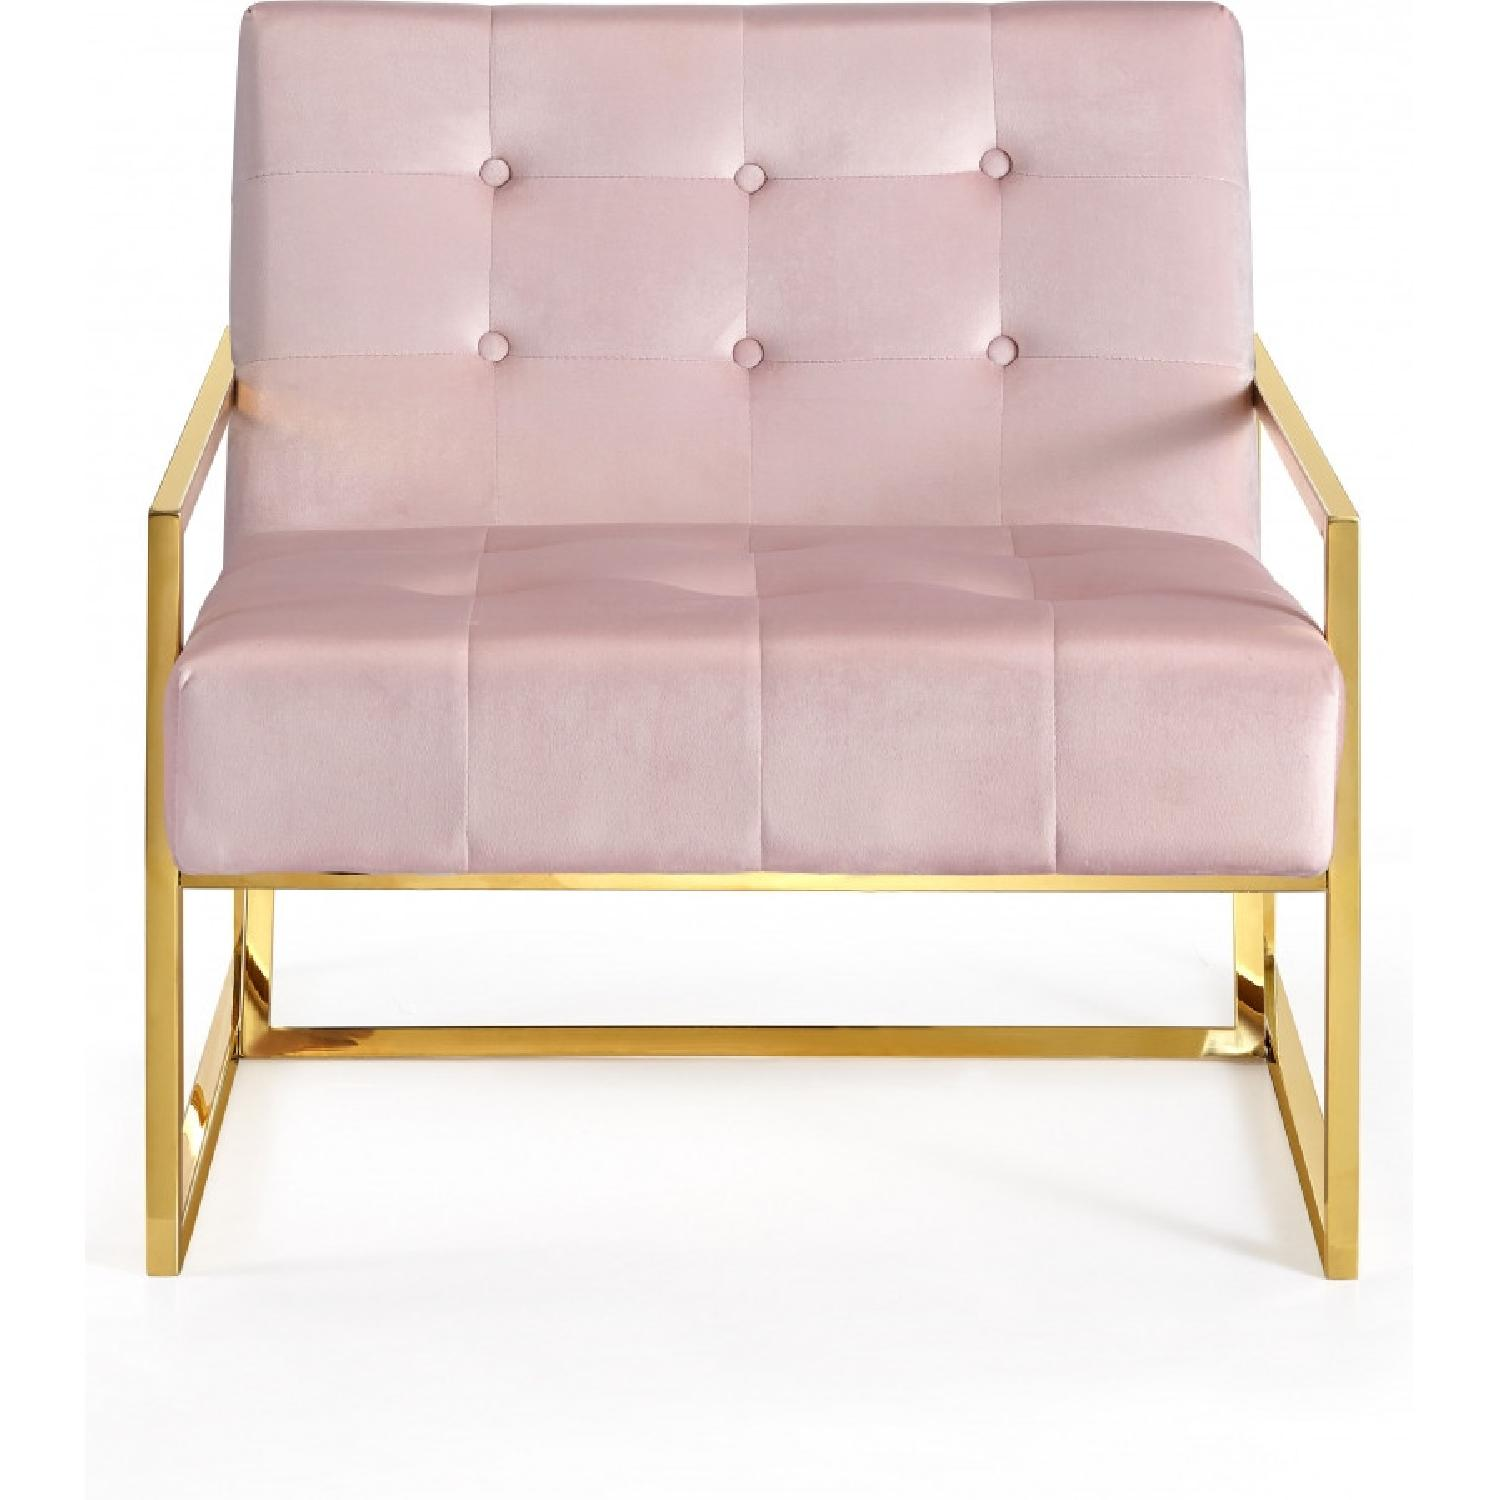 Meridian Furniture Pink & Gold Pierre Velvet Accent Chair - image-0